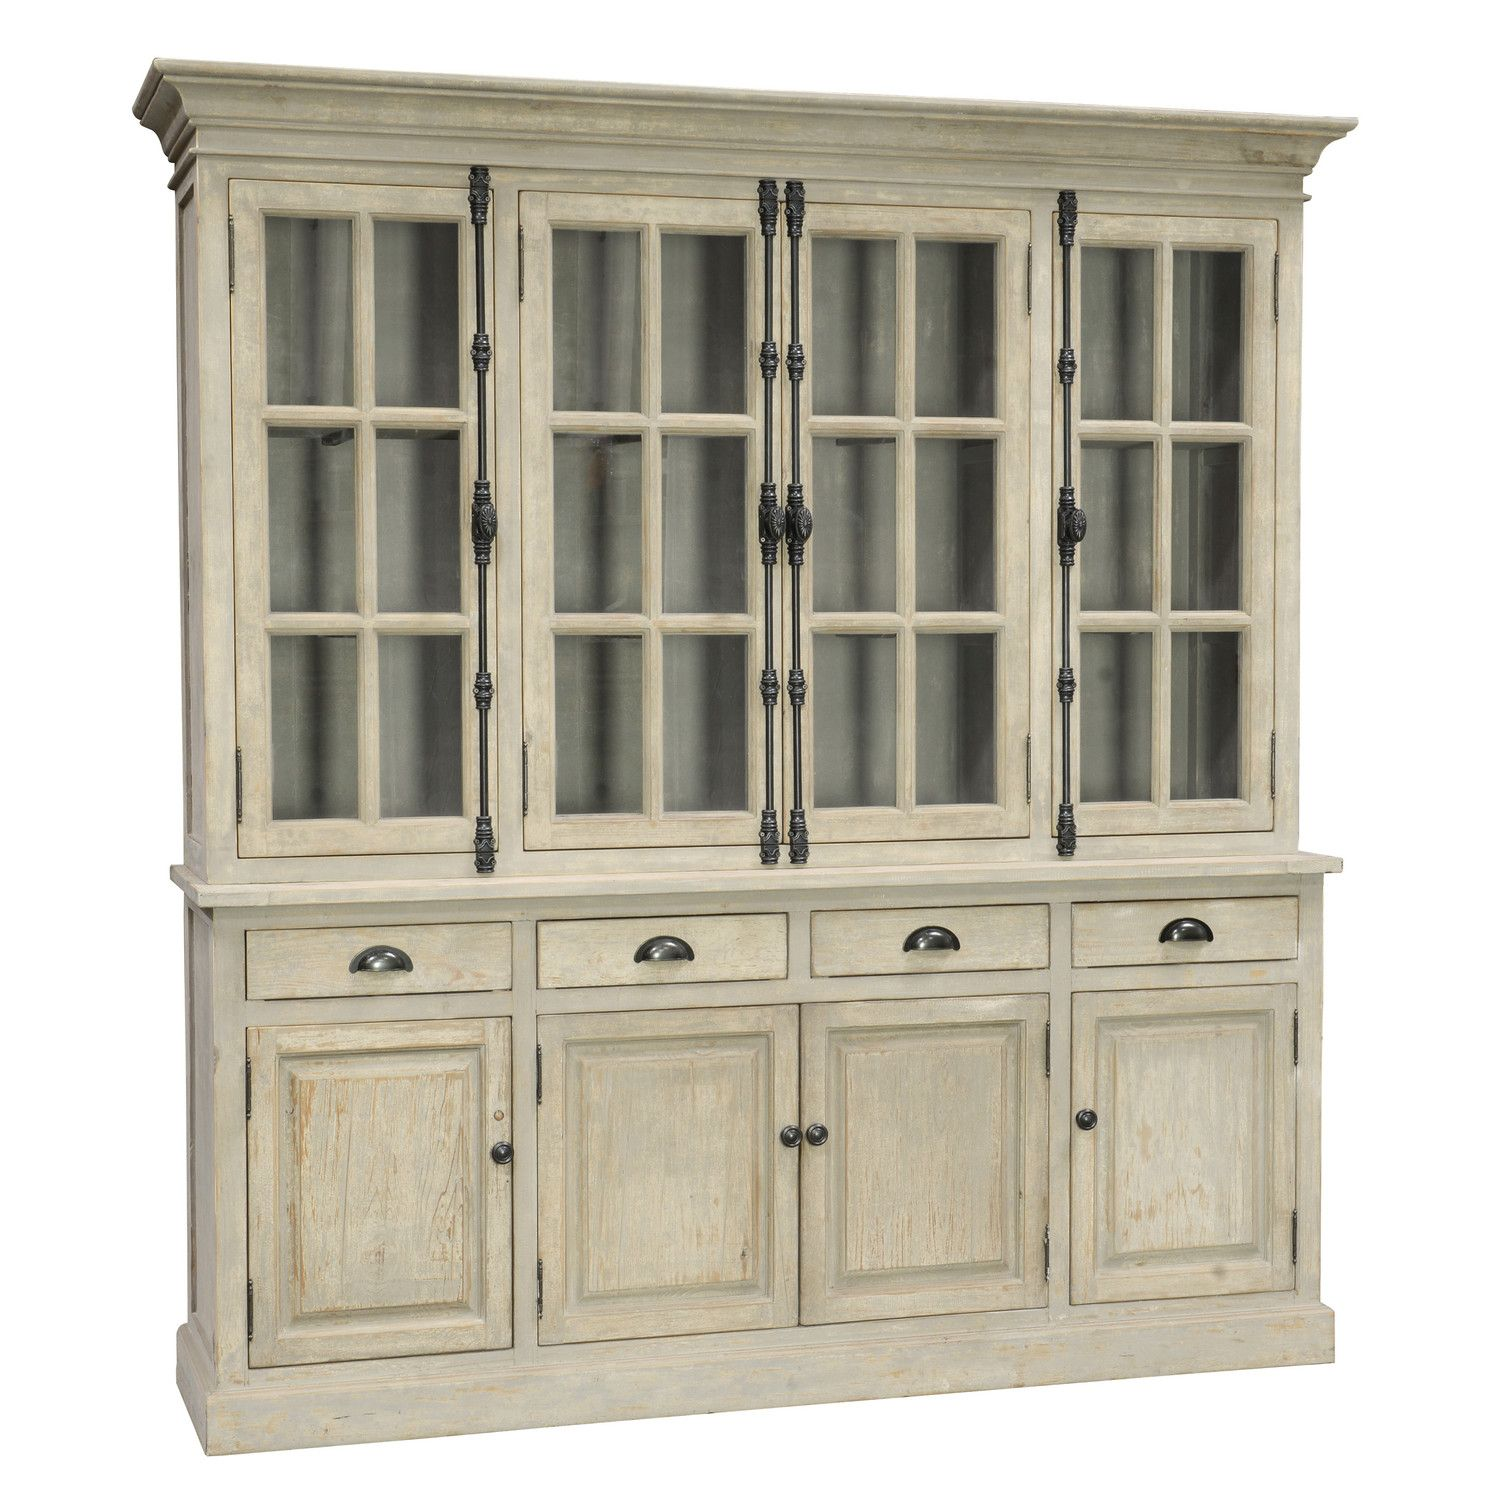 Features Windsor collection Adjustable interior shelves White